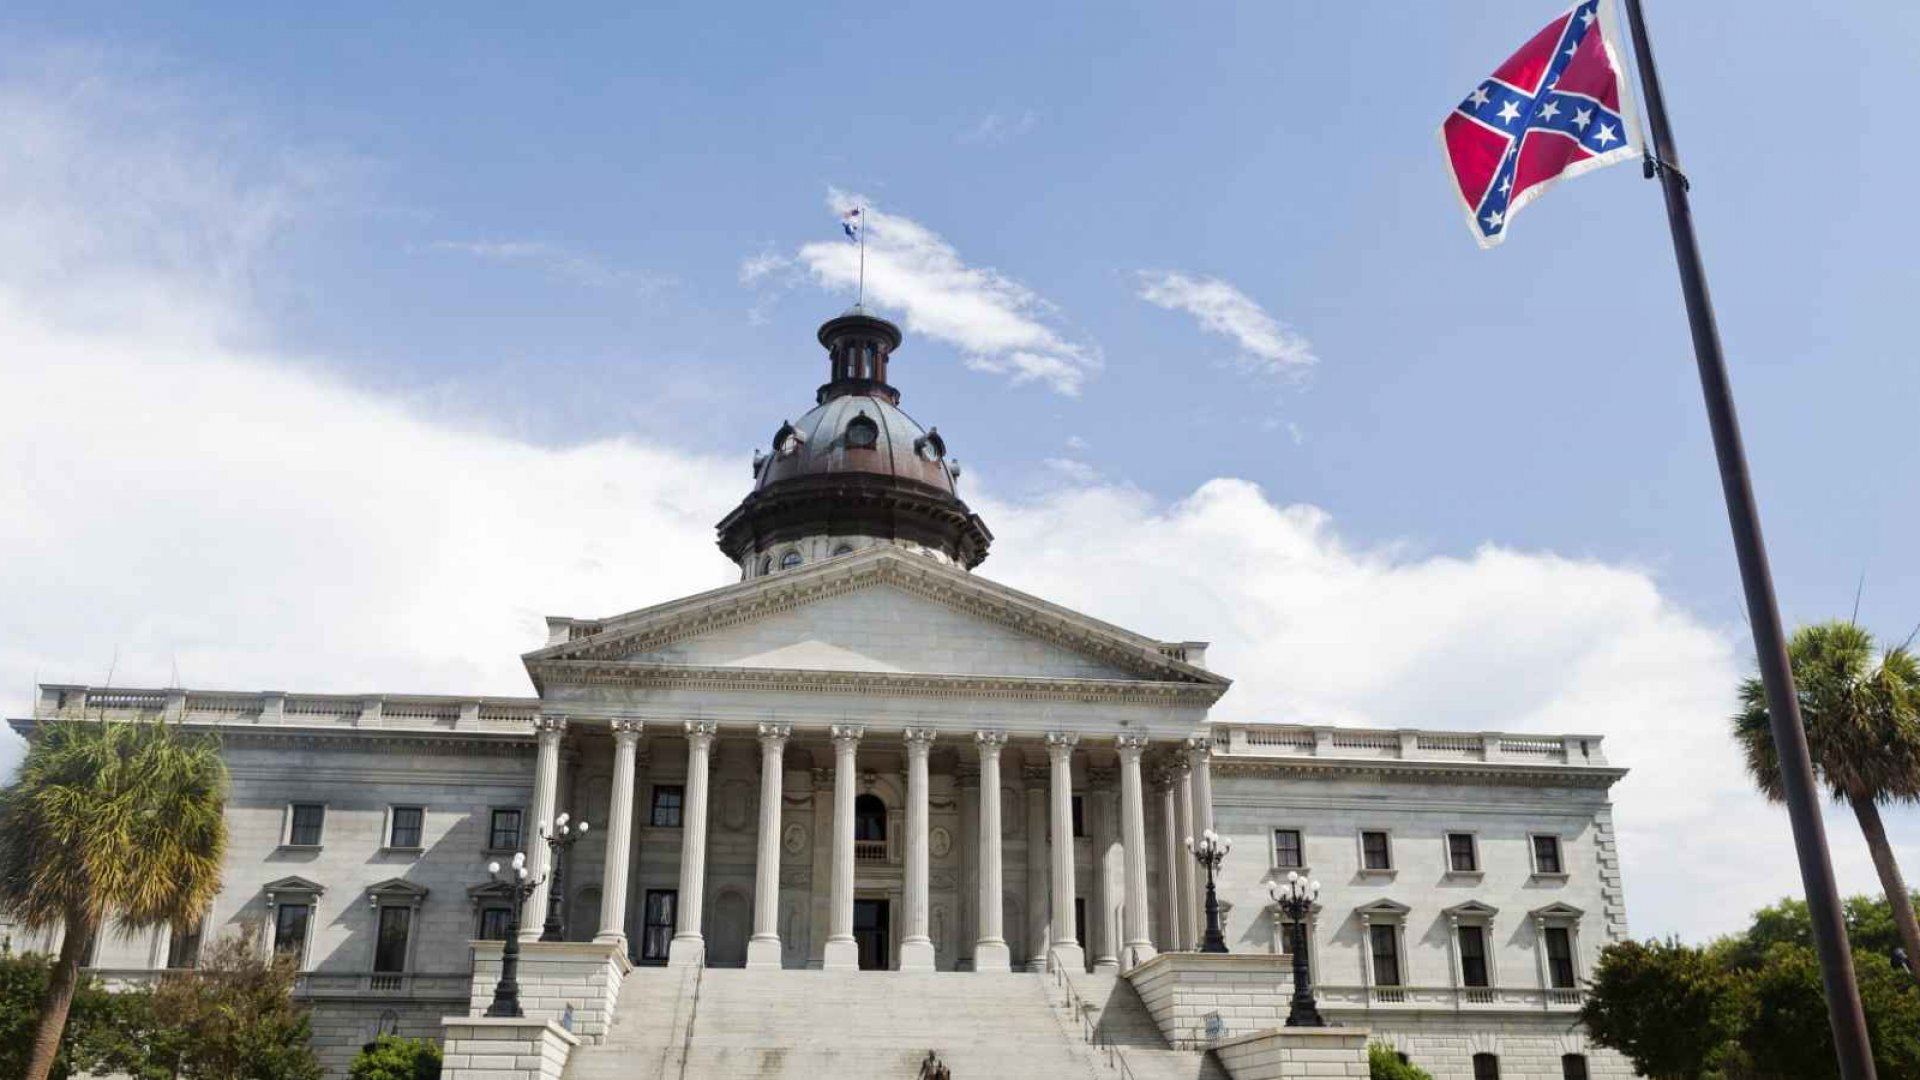 Southern Entrepreneurs Weigh In on the Confederate Flag Debate